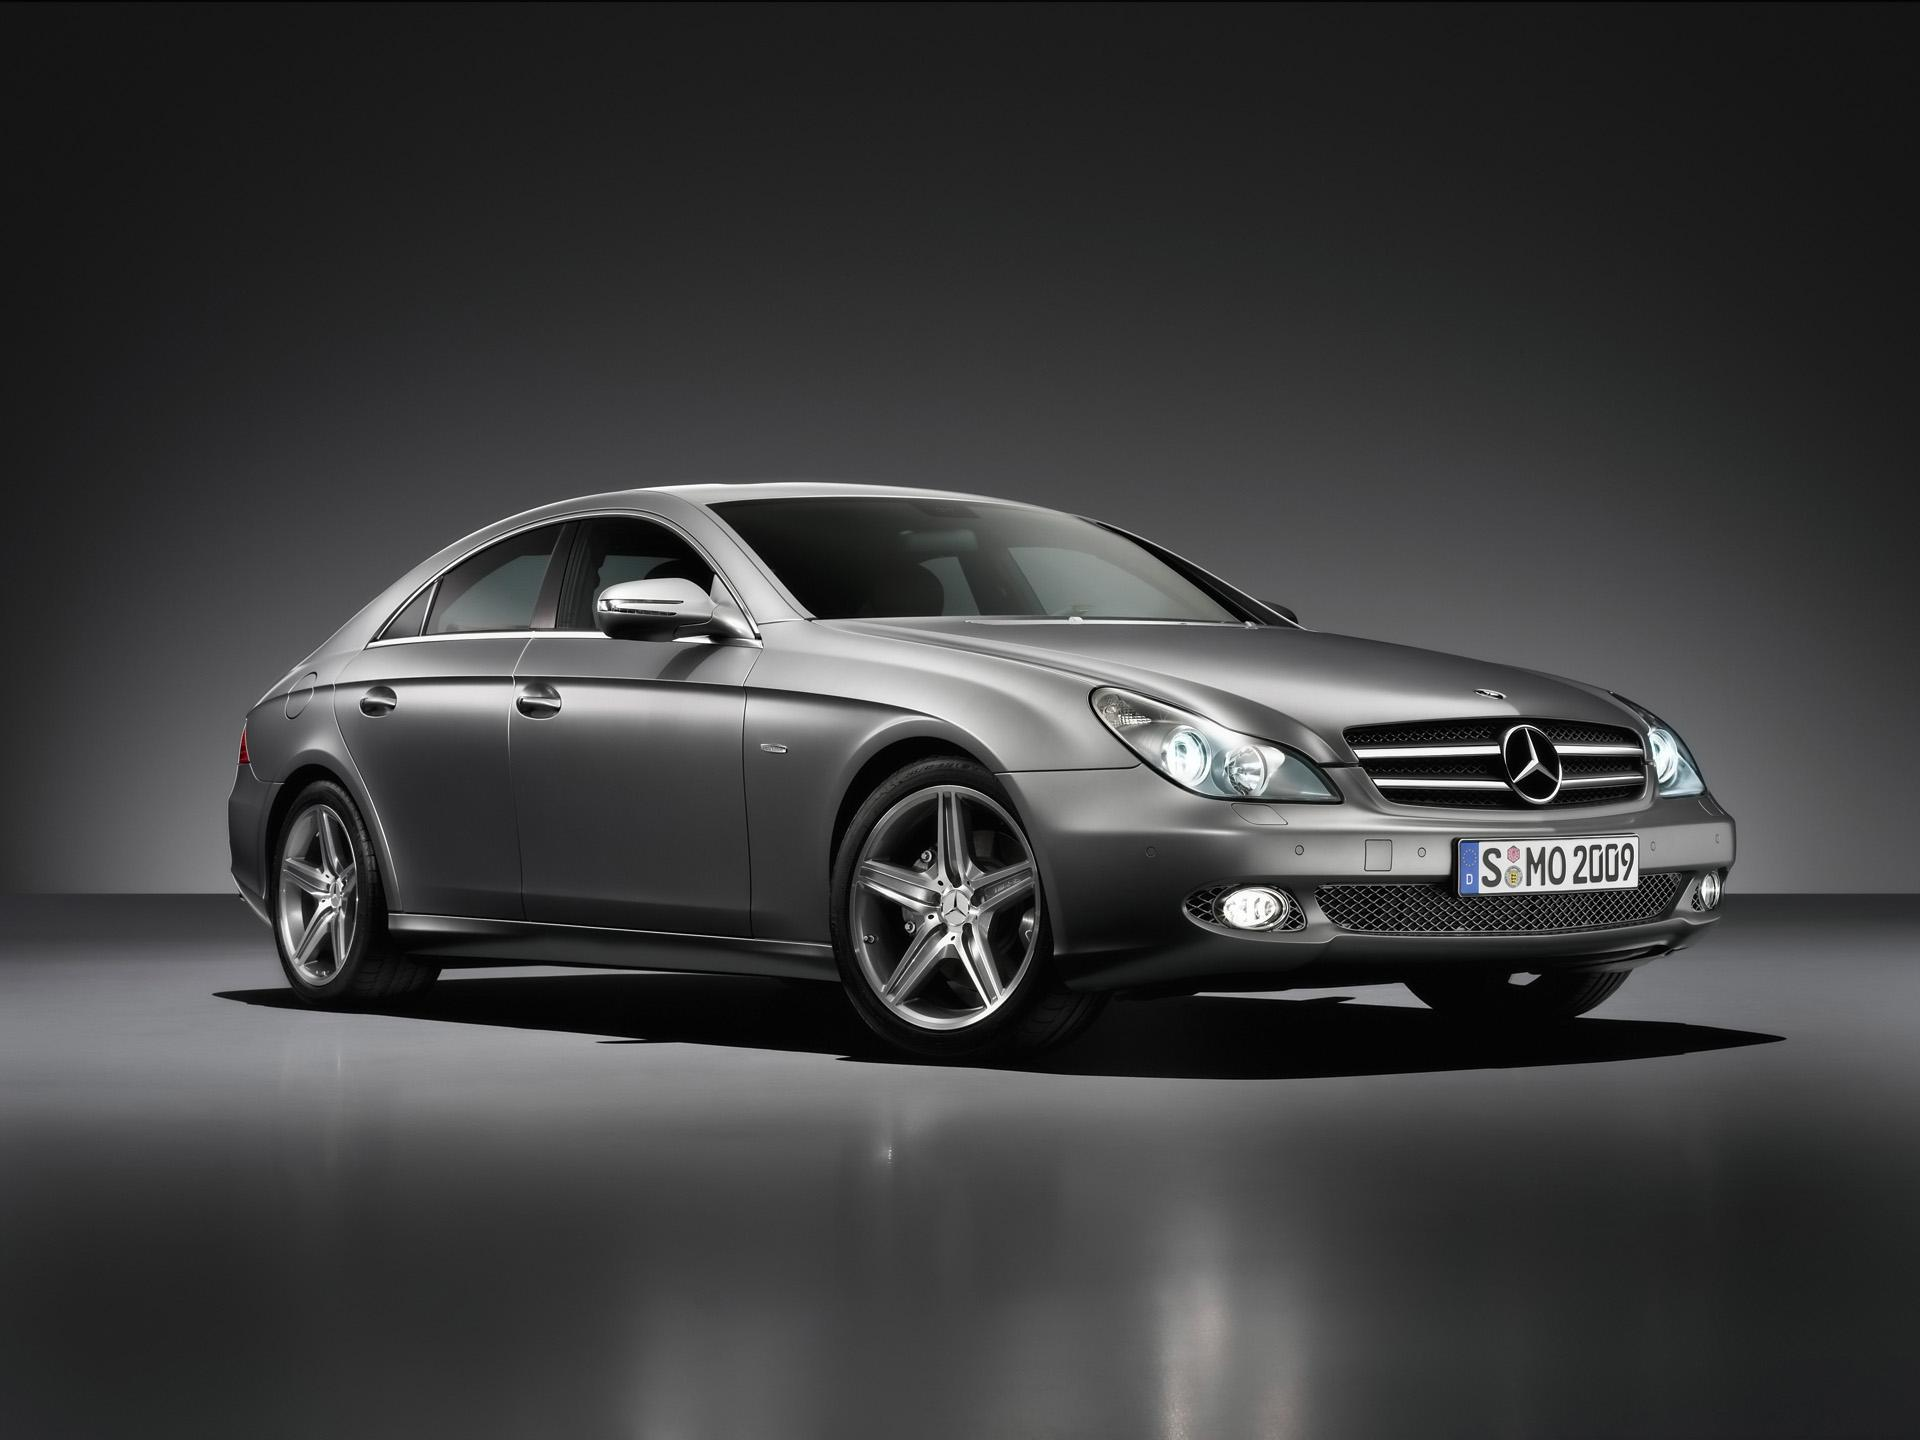 2009 mercedes benz cls class grand edition news and for 2009 mercedes benz cls class